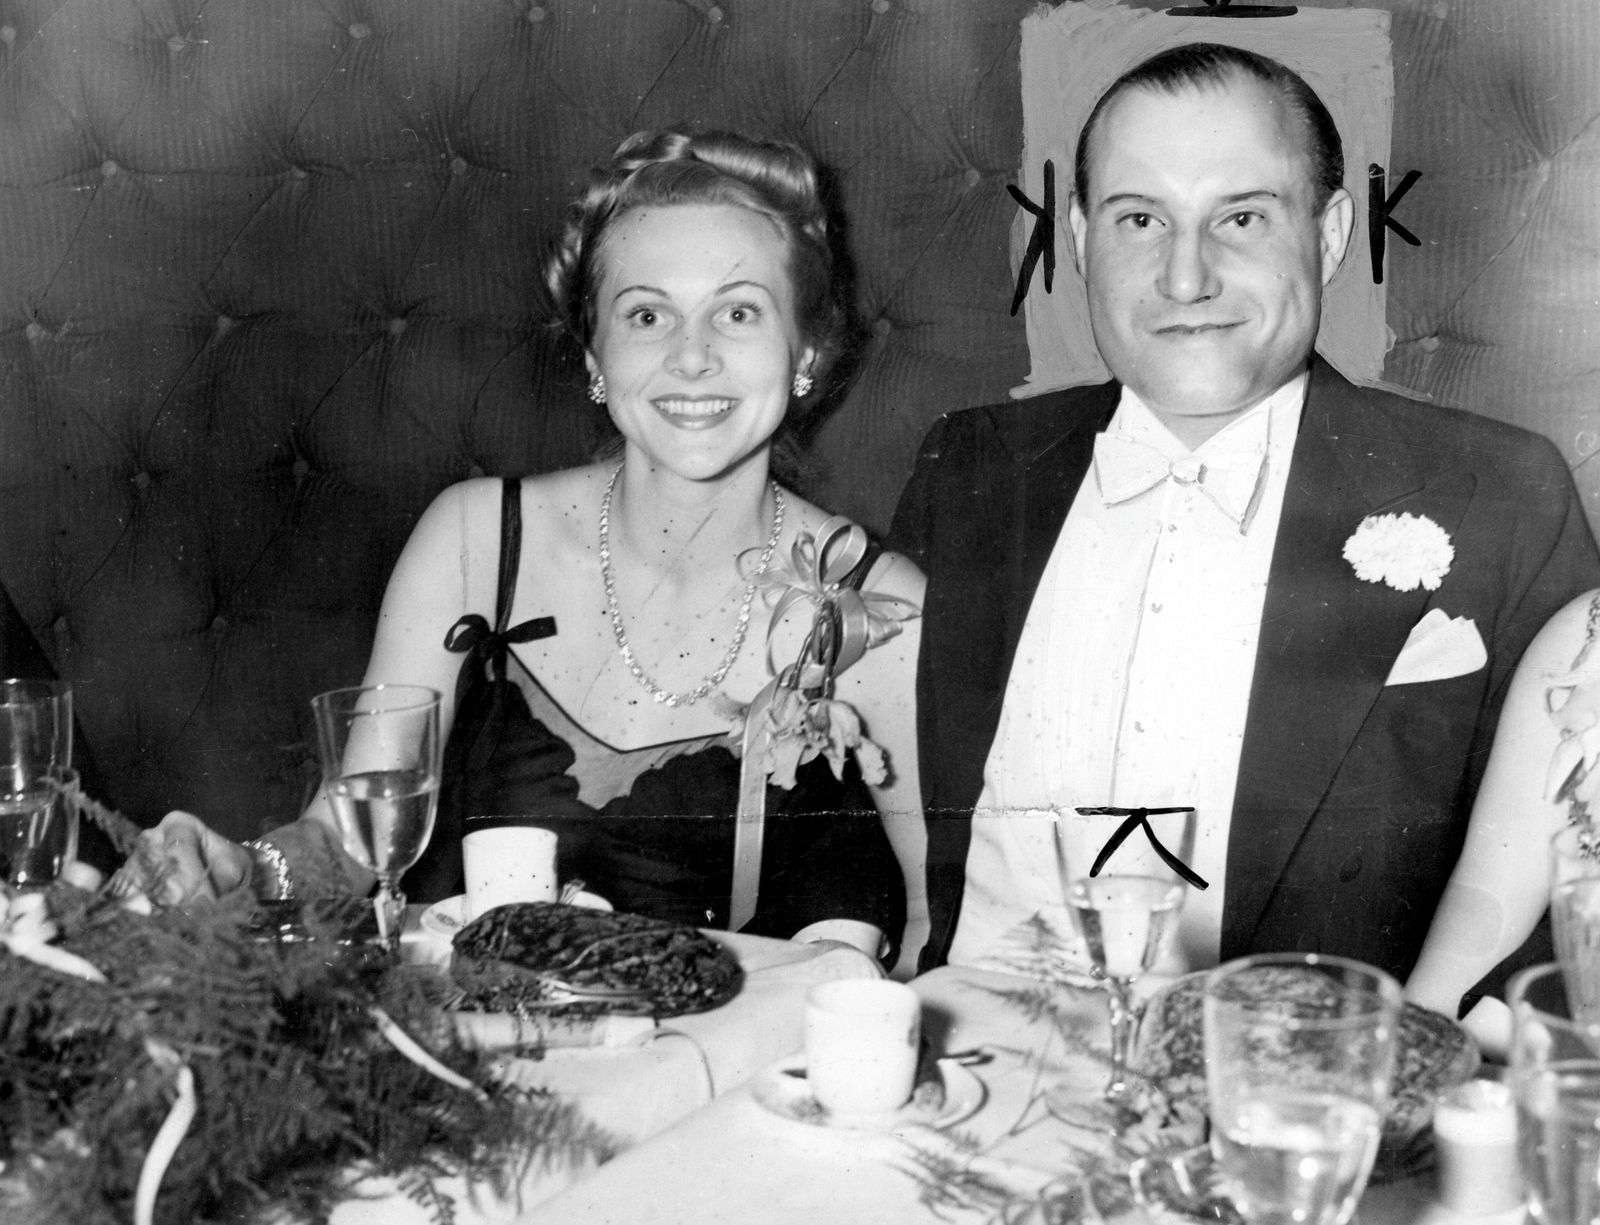 Fritz Mandl one time munitions magnate and former husband of film actress Hedy Lamar pictured with